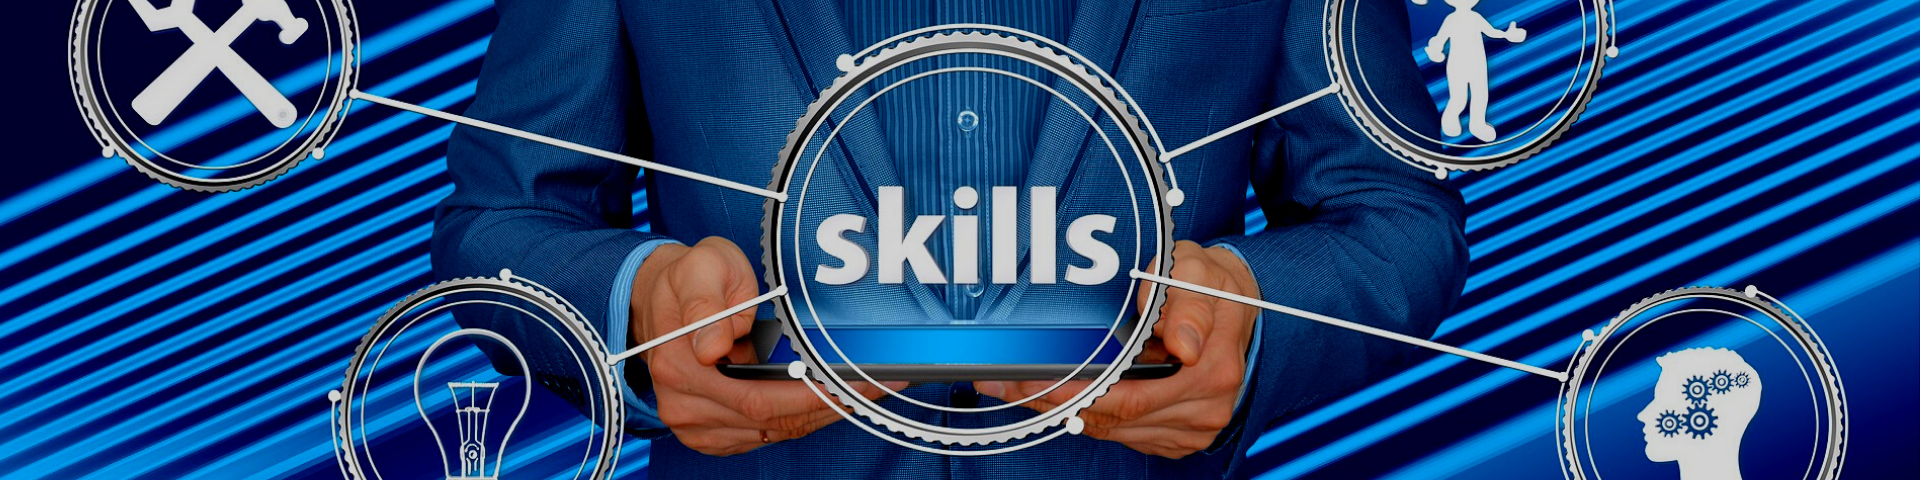 Skills with icons